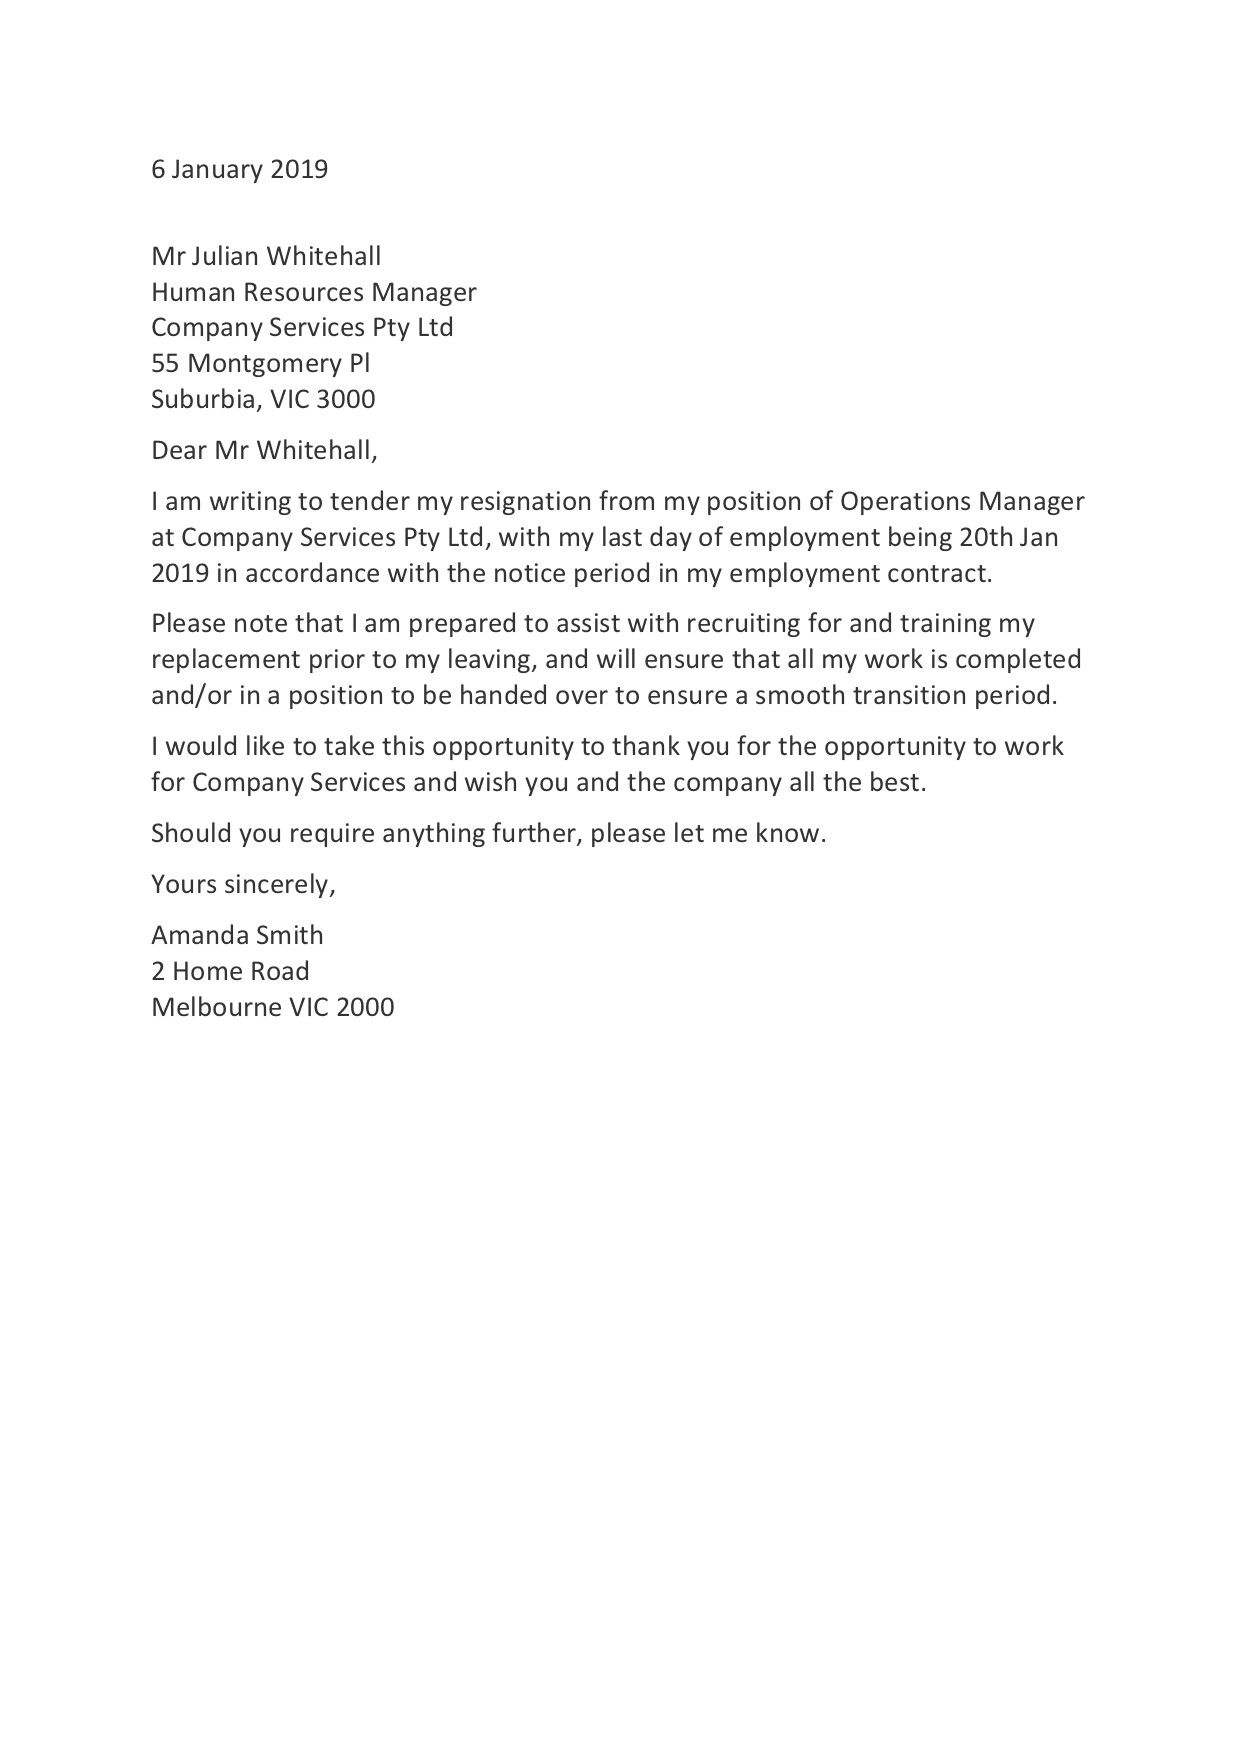 resignation letter templates: how to resign in 2020